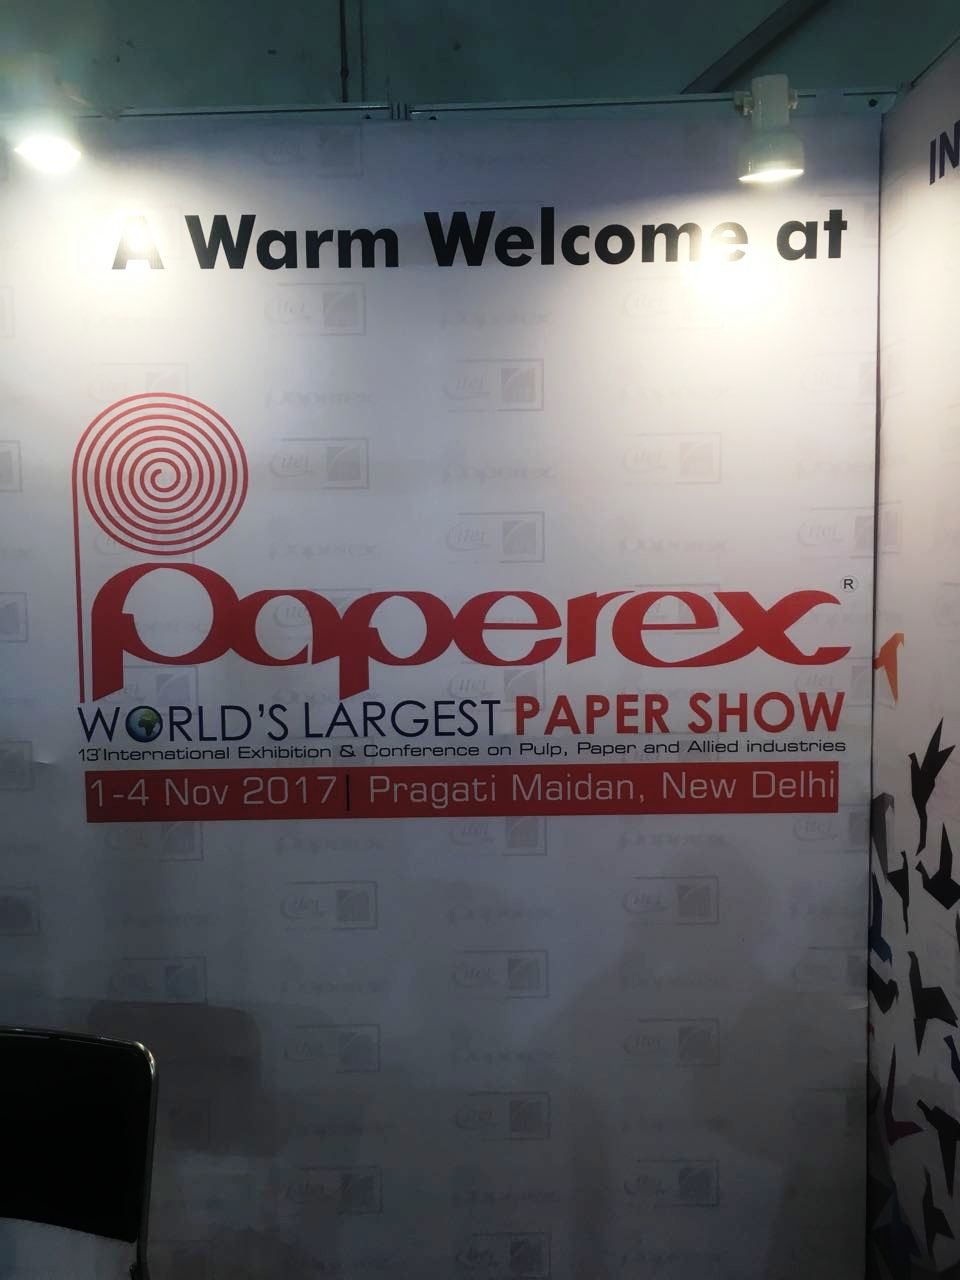 13th PAPEREX WORLDS LARGEST PAPER SHOW